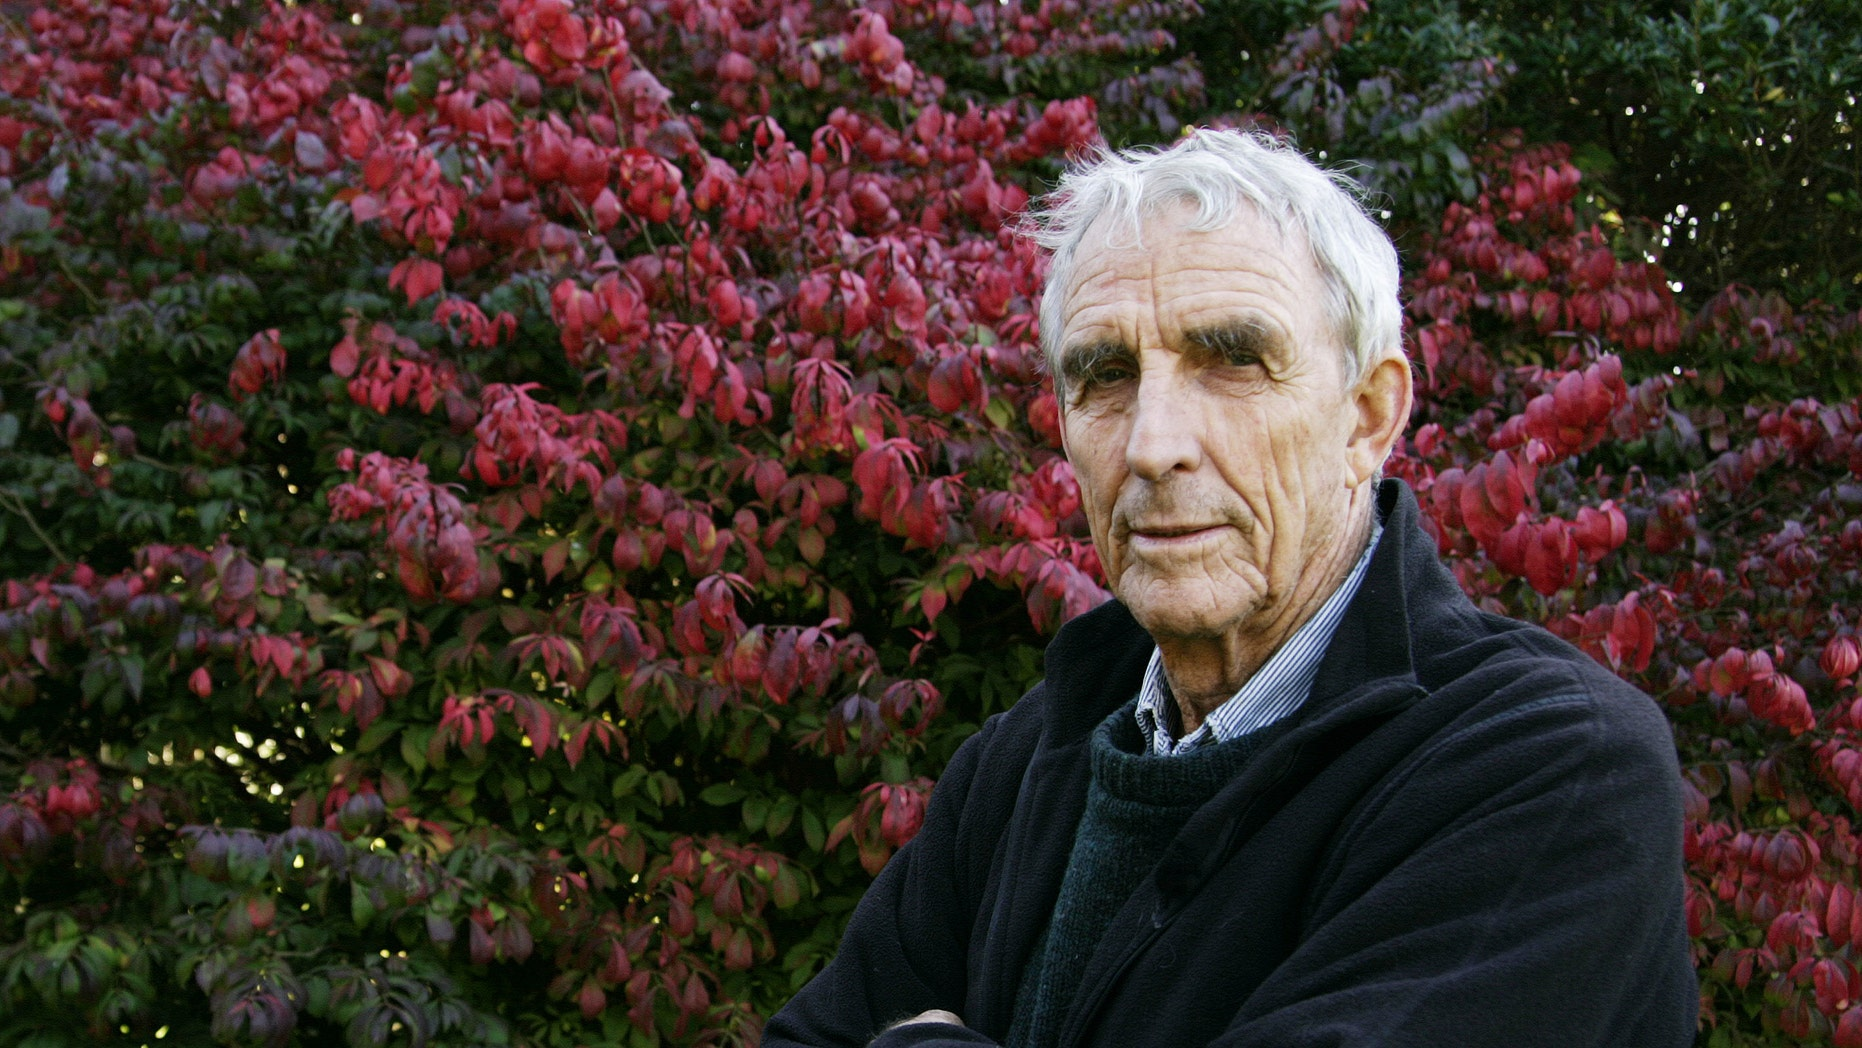 October 28, 2004. Writer Peter Matthiessen stands in the yard of his house in Sagaponack, N.Y.  Matthiessen, award-winning author of more than thirty books, world-renowned naturalist, explorer, Buddhist teacher, and political activist, died Saturday, April 5, 2014 after an illness of some months,according to his publisher Geoff Kloske of Riverhead Books. He was 86.